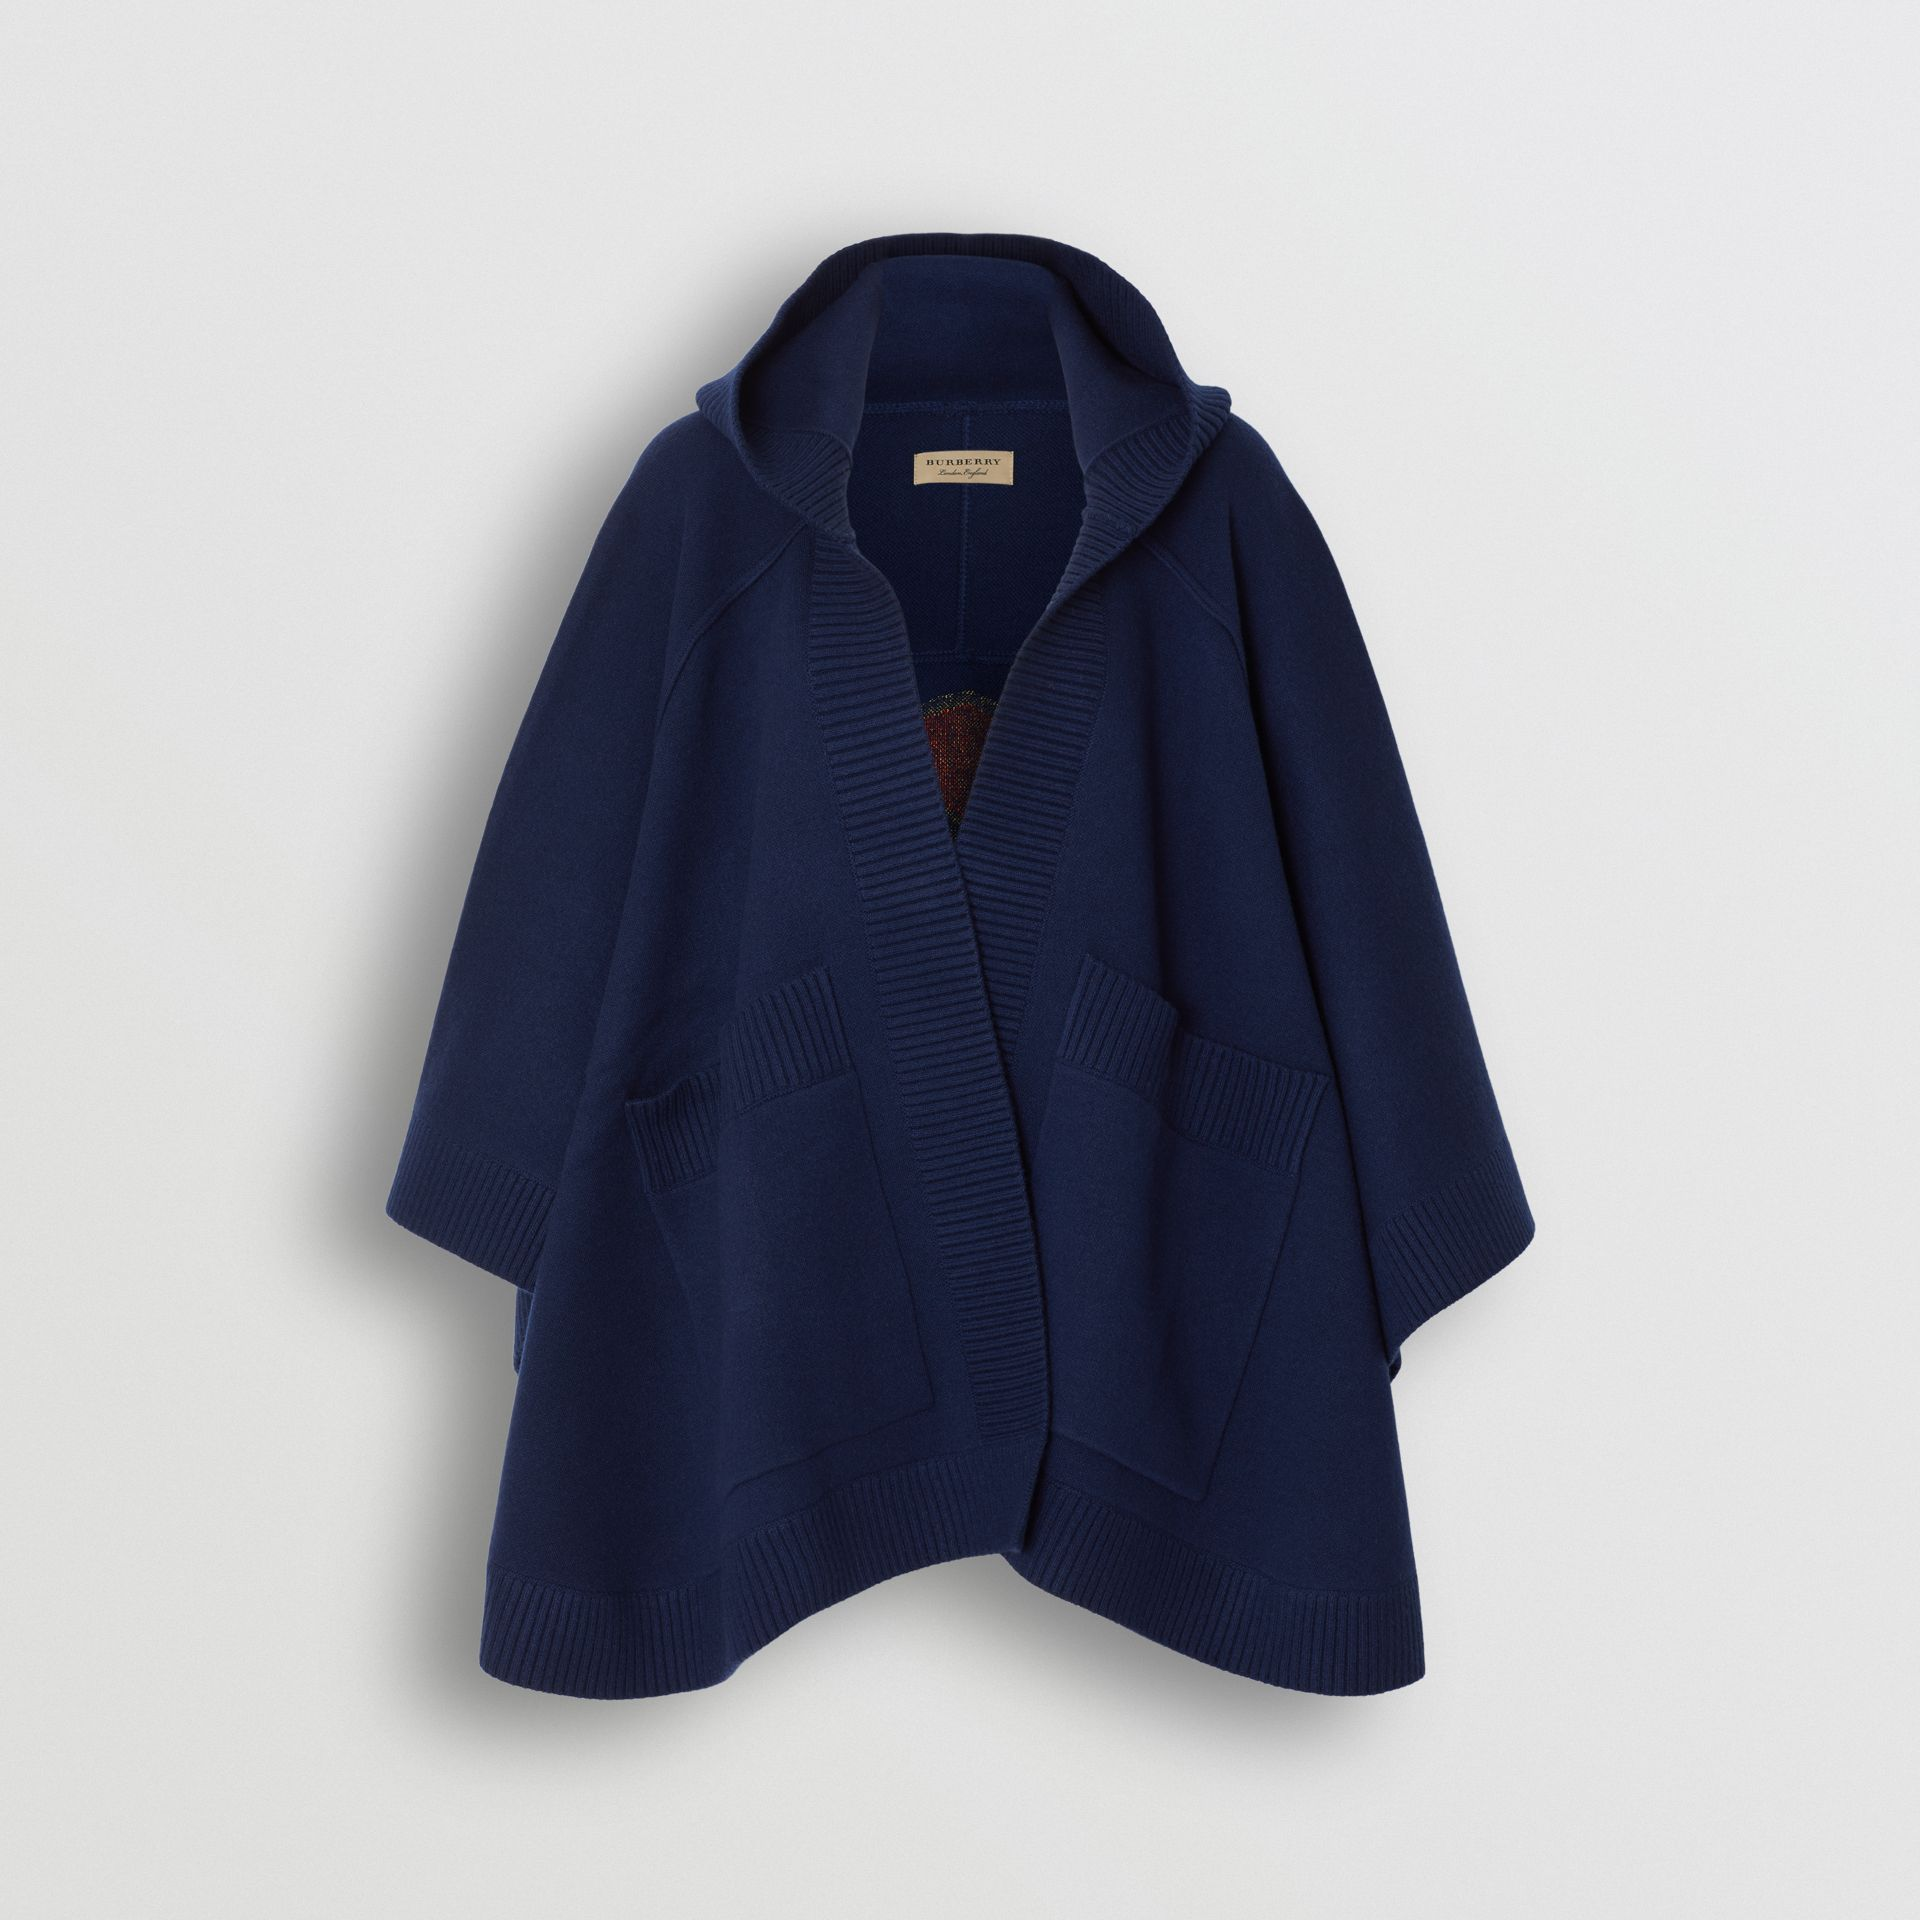 Crest Wool Blend Jacquard Hooded Cape in Navy - Women   Burberry United Kingdom - gallery image 3